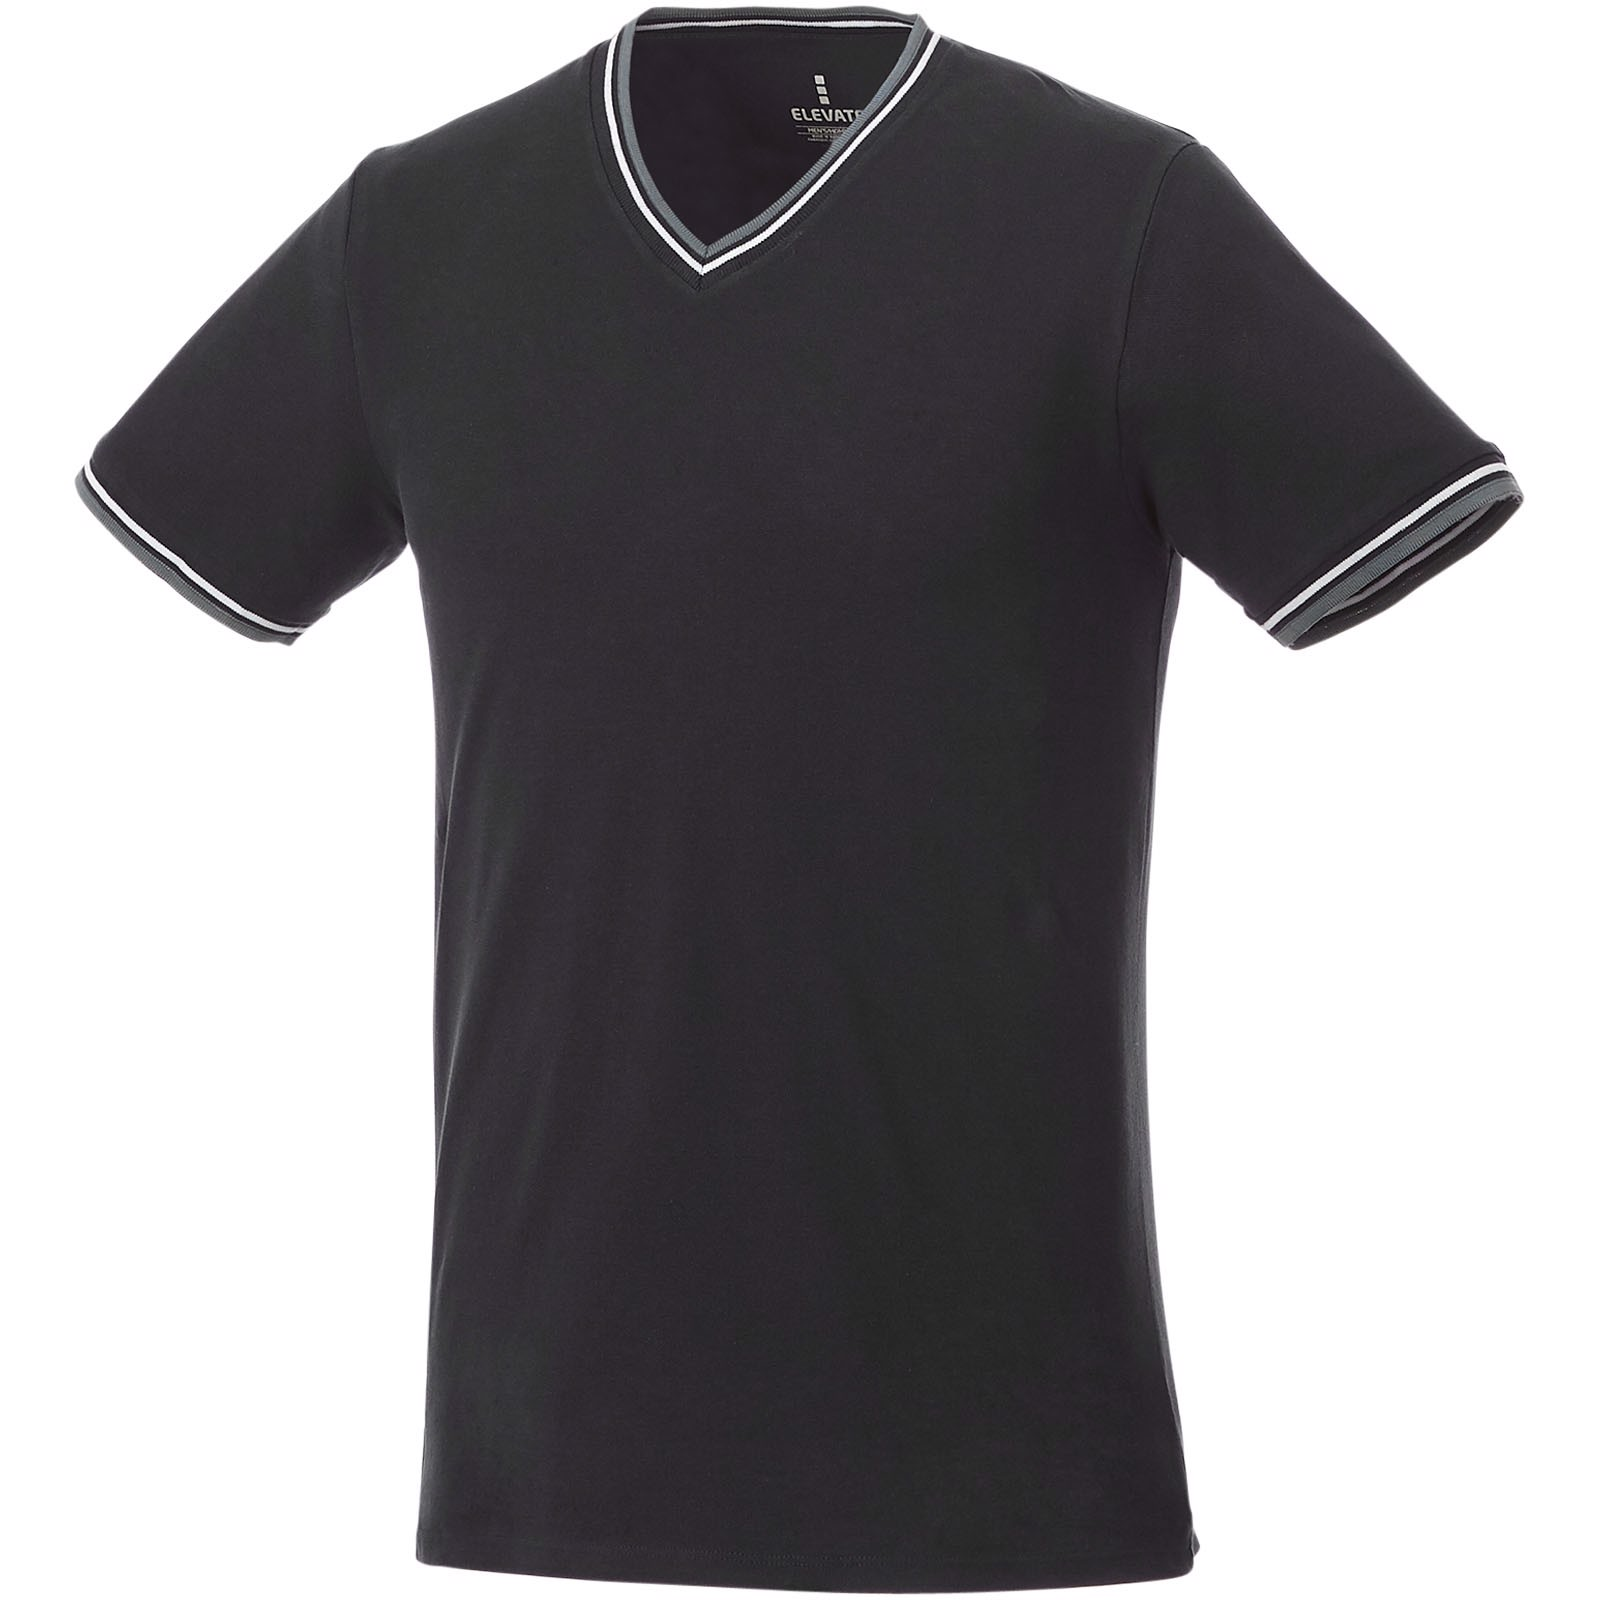 Elbert short sleeve men's pique t-shirt - Solid black / Grey melange / White / M